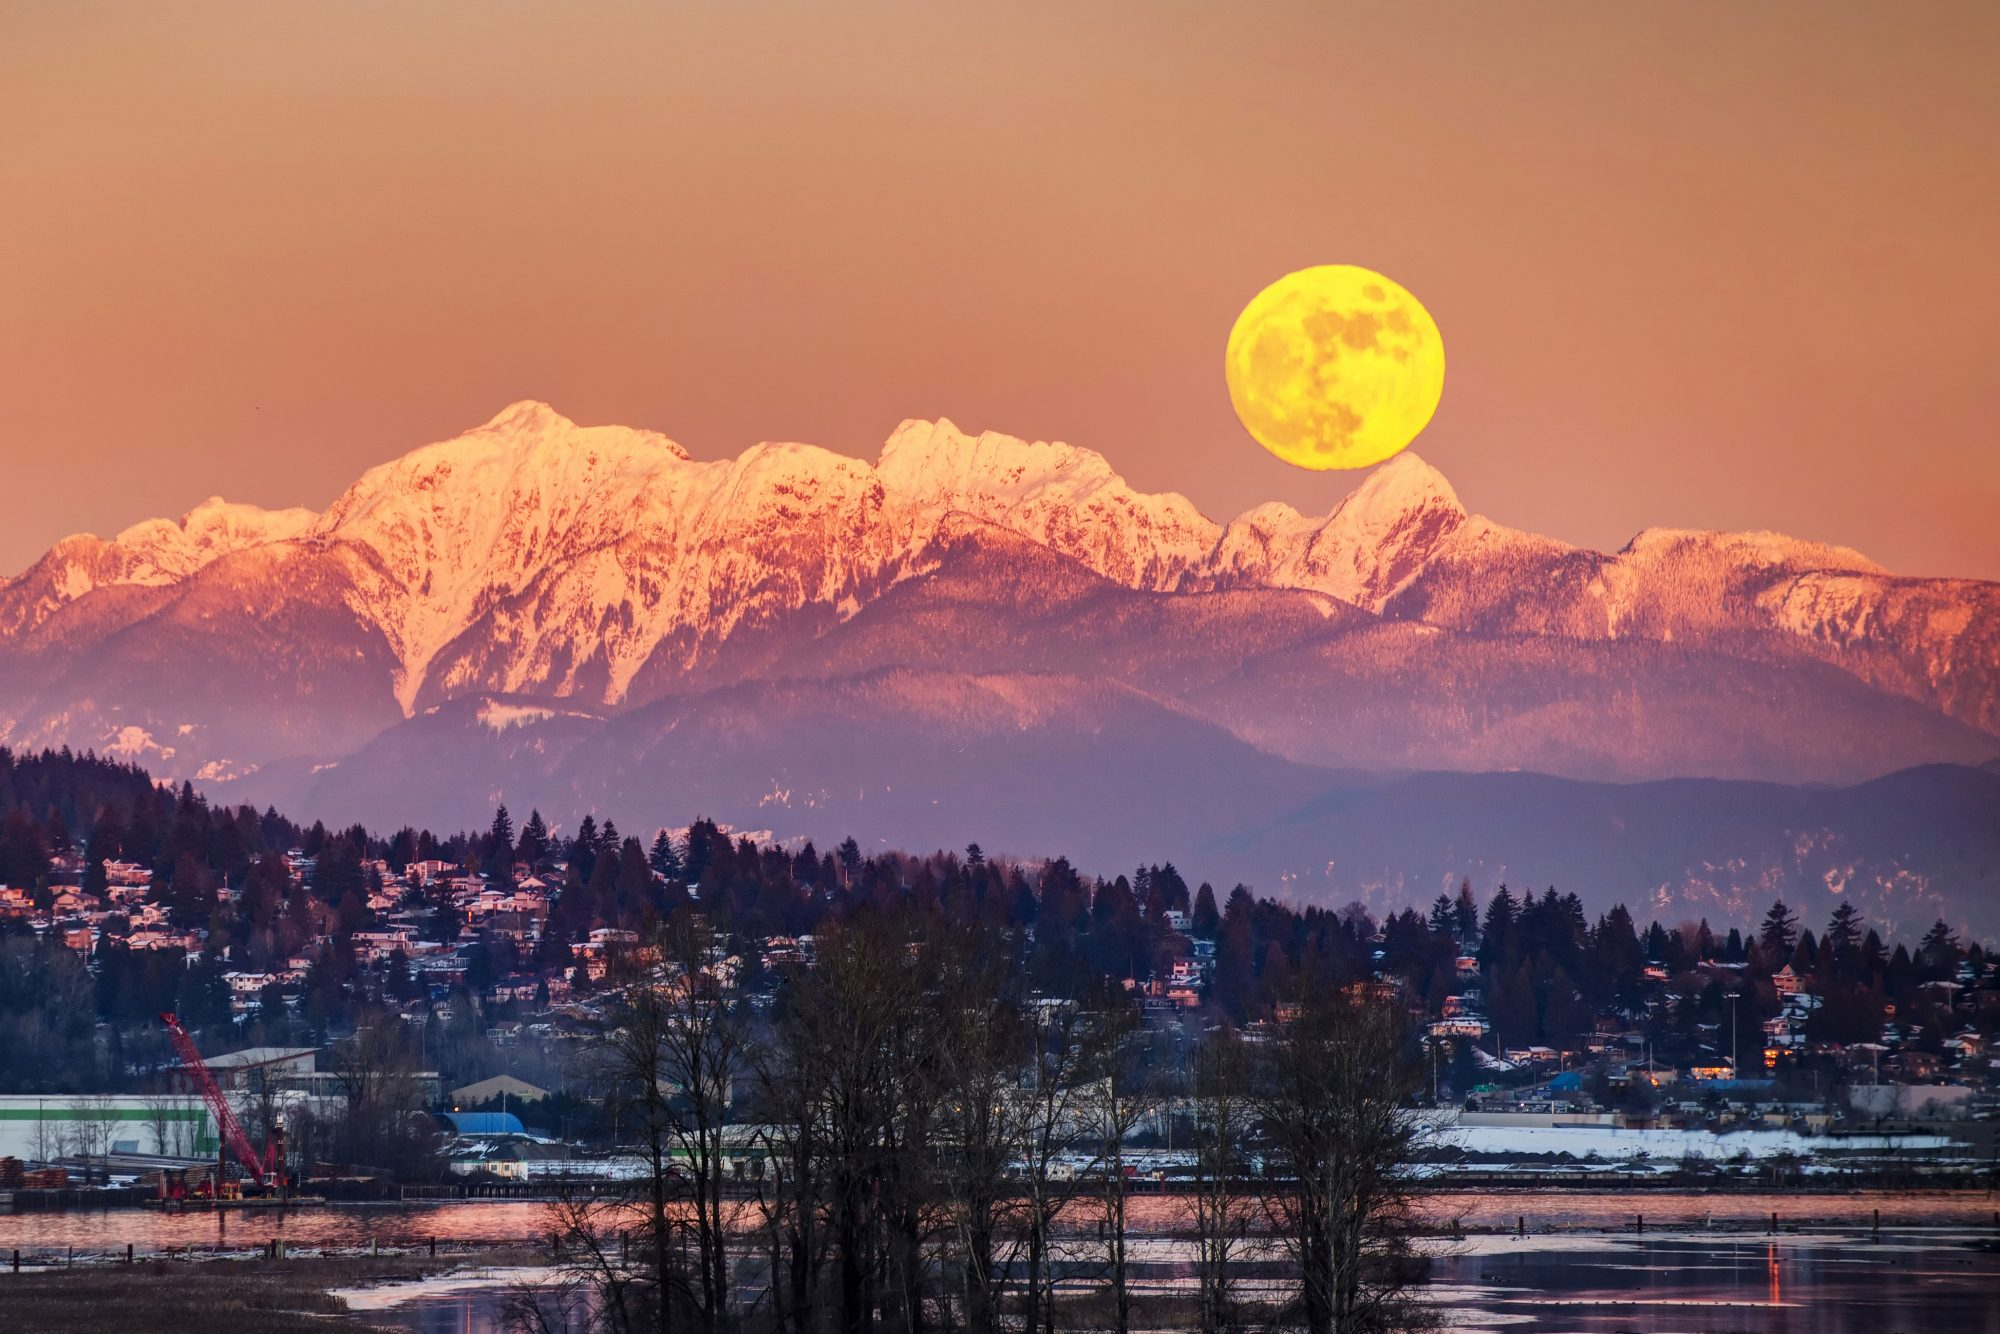 full moon rising over snow capped mountains